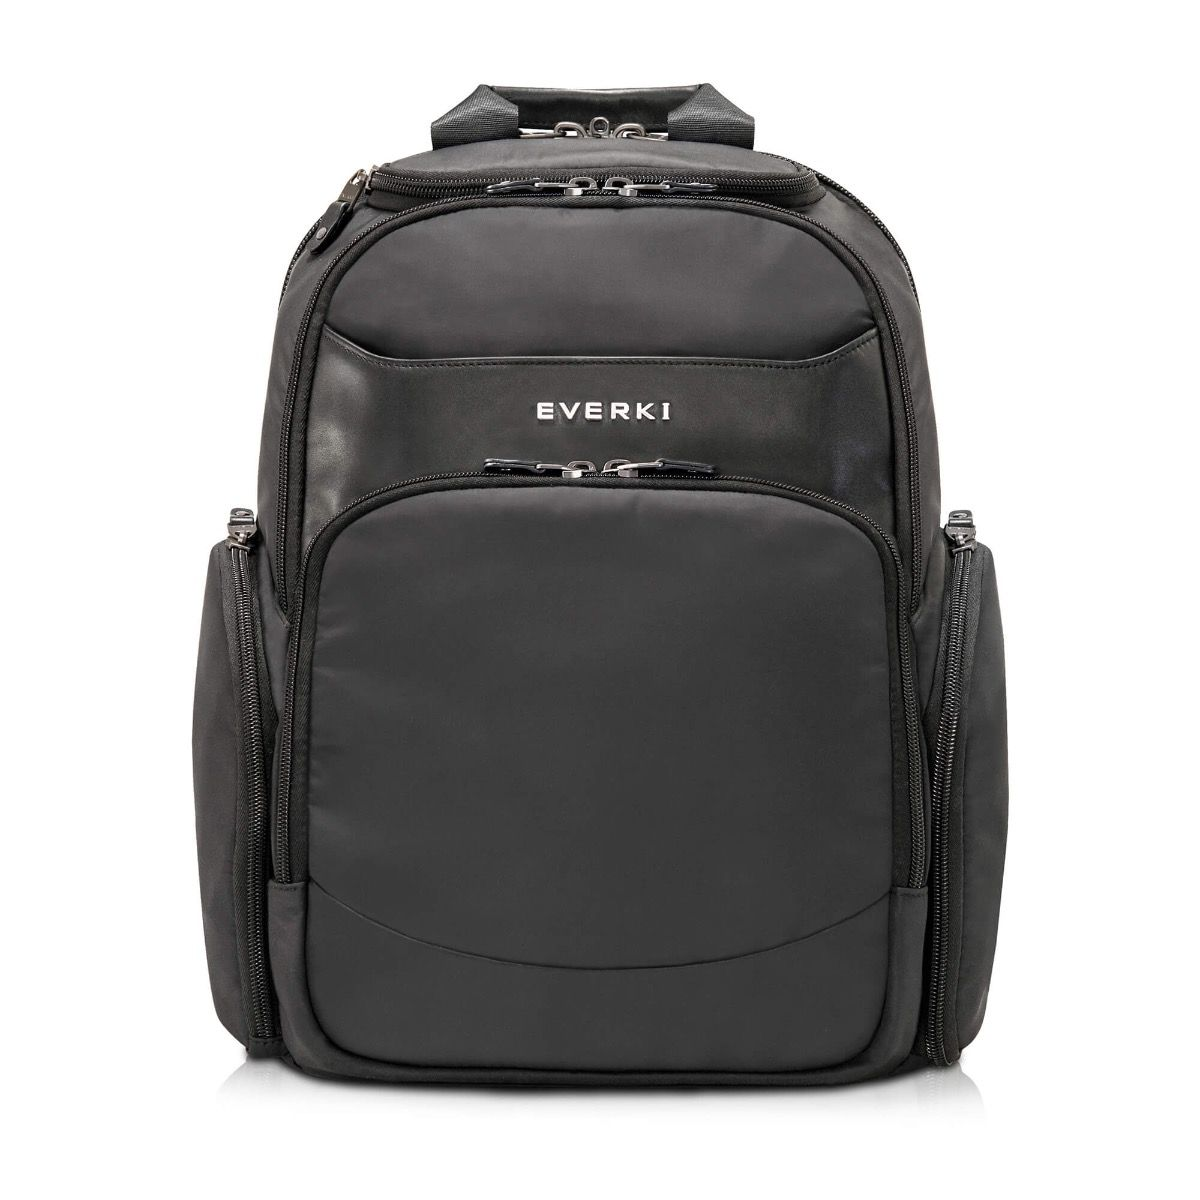 EVERKI Suite Travel Friendly 14 Inch Laptop Backpack